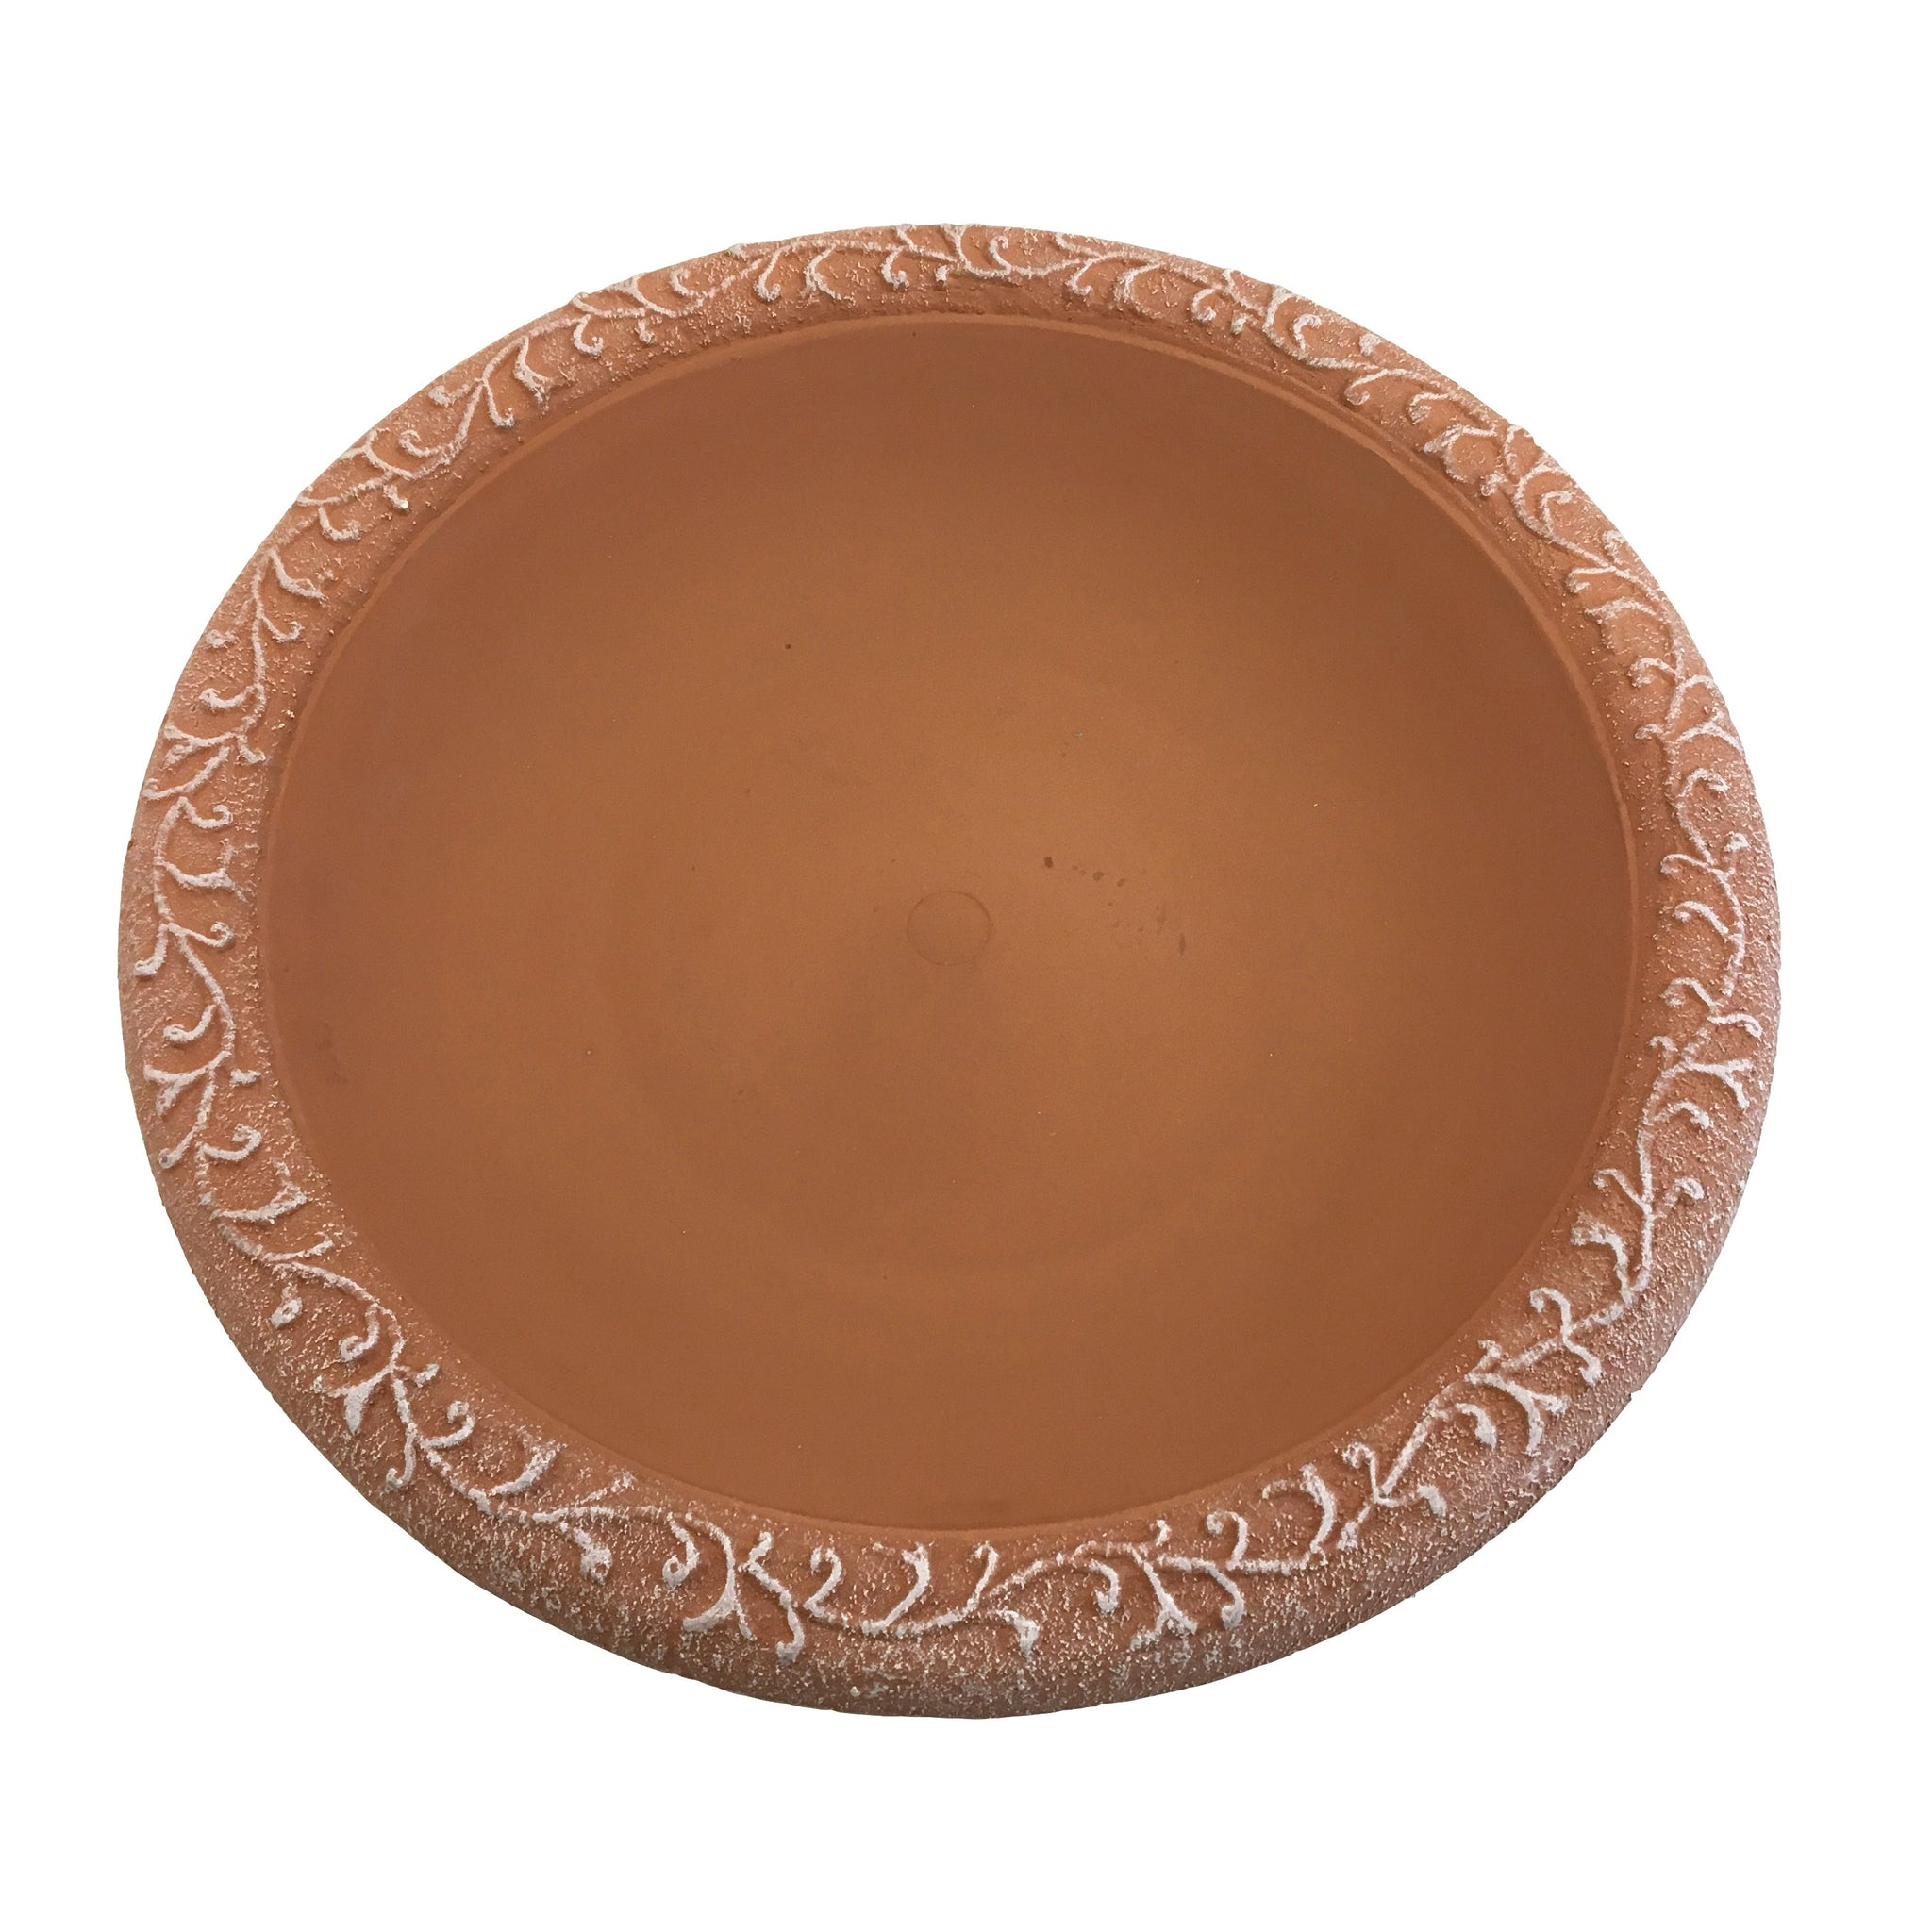 Terra Cotta Gloss Bird Bowl with Matte Rim